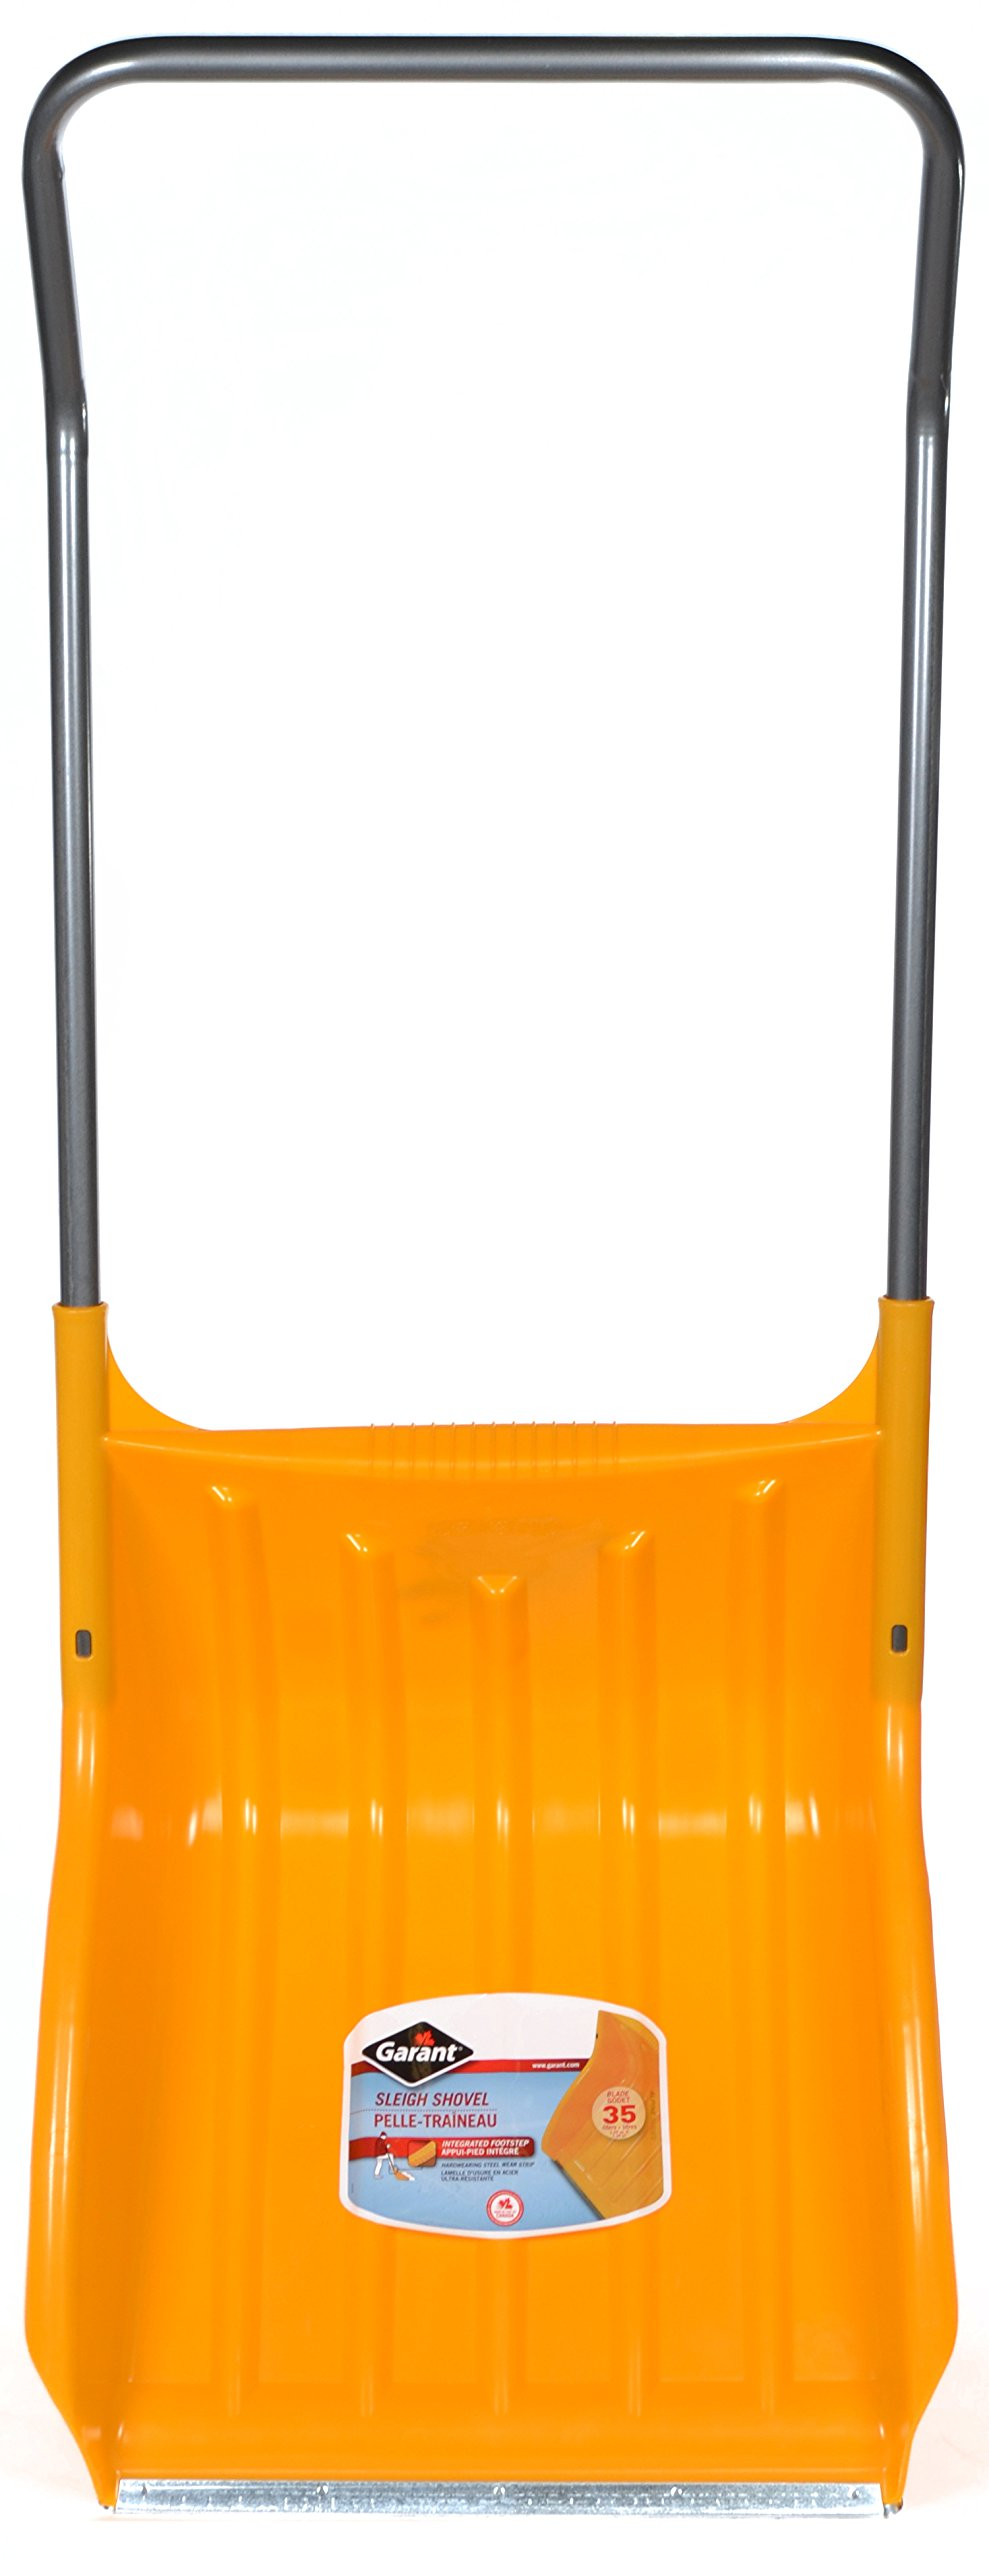 Garant APSS22 35-L Sleigh Shovel with Footstep and Steel Wear Strip product image